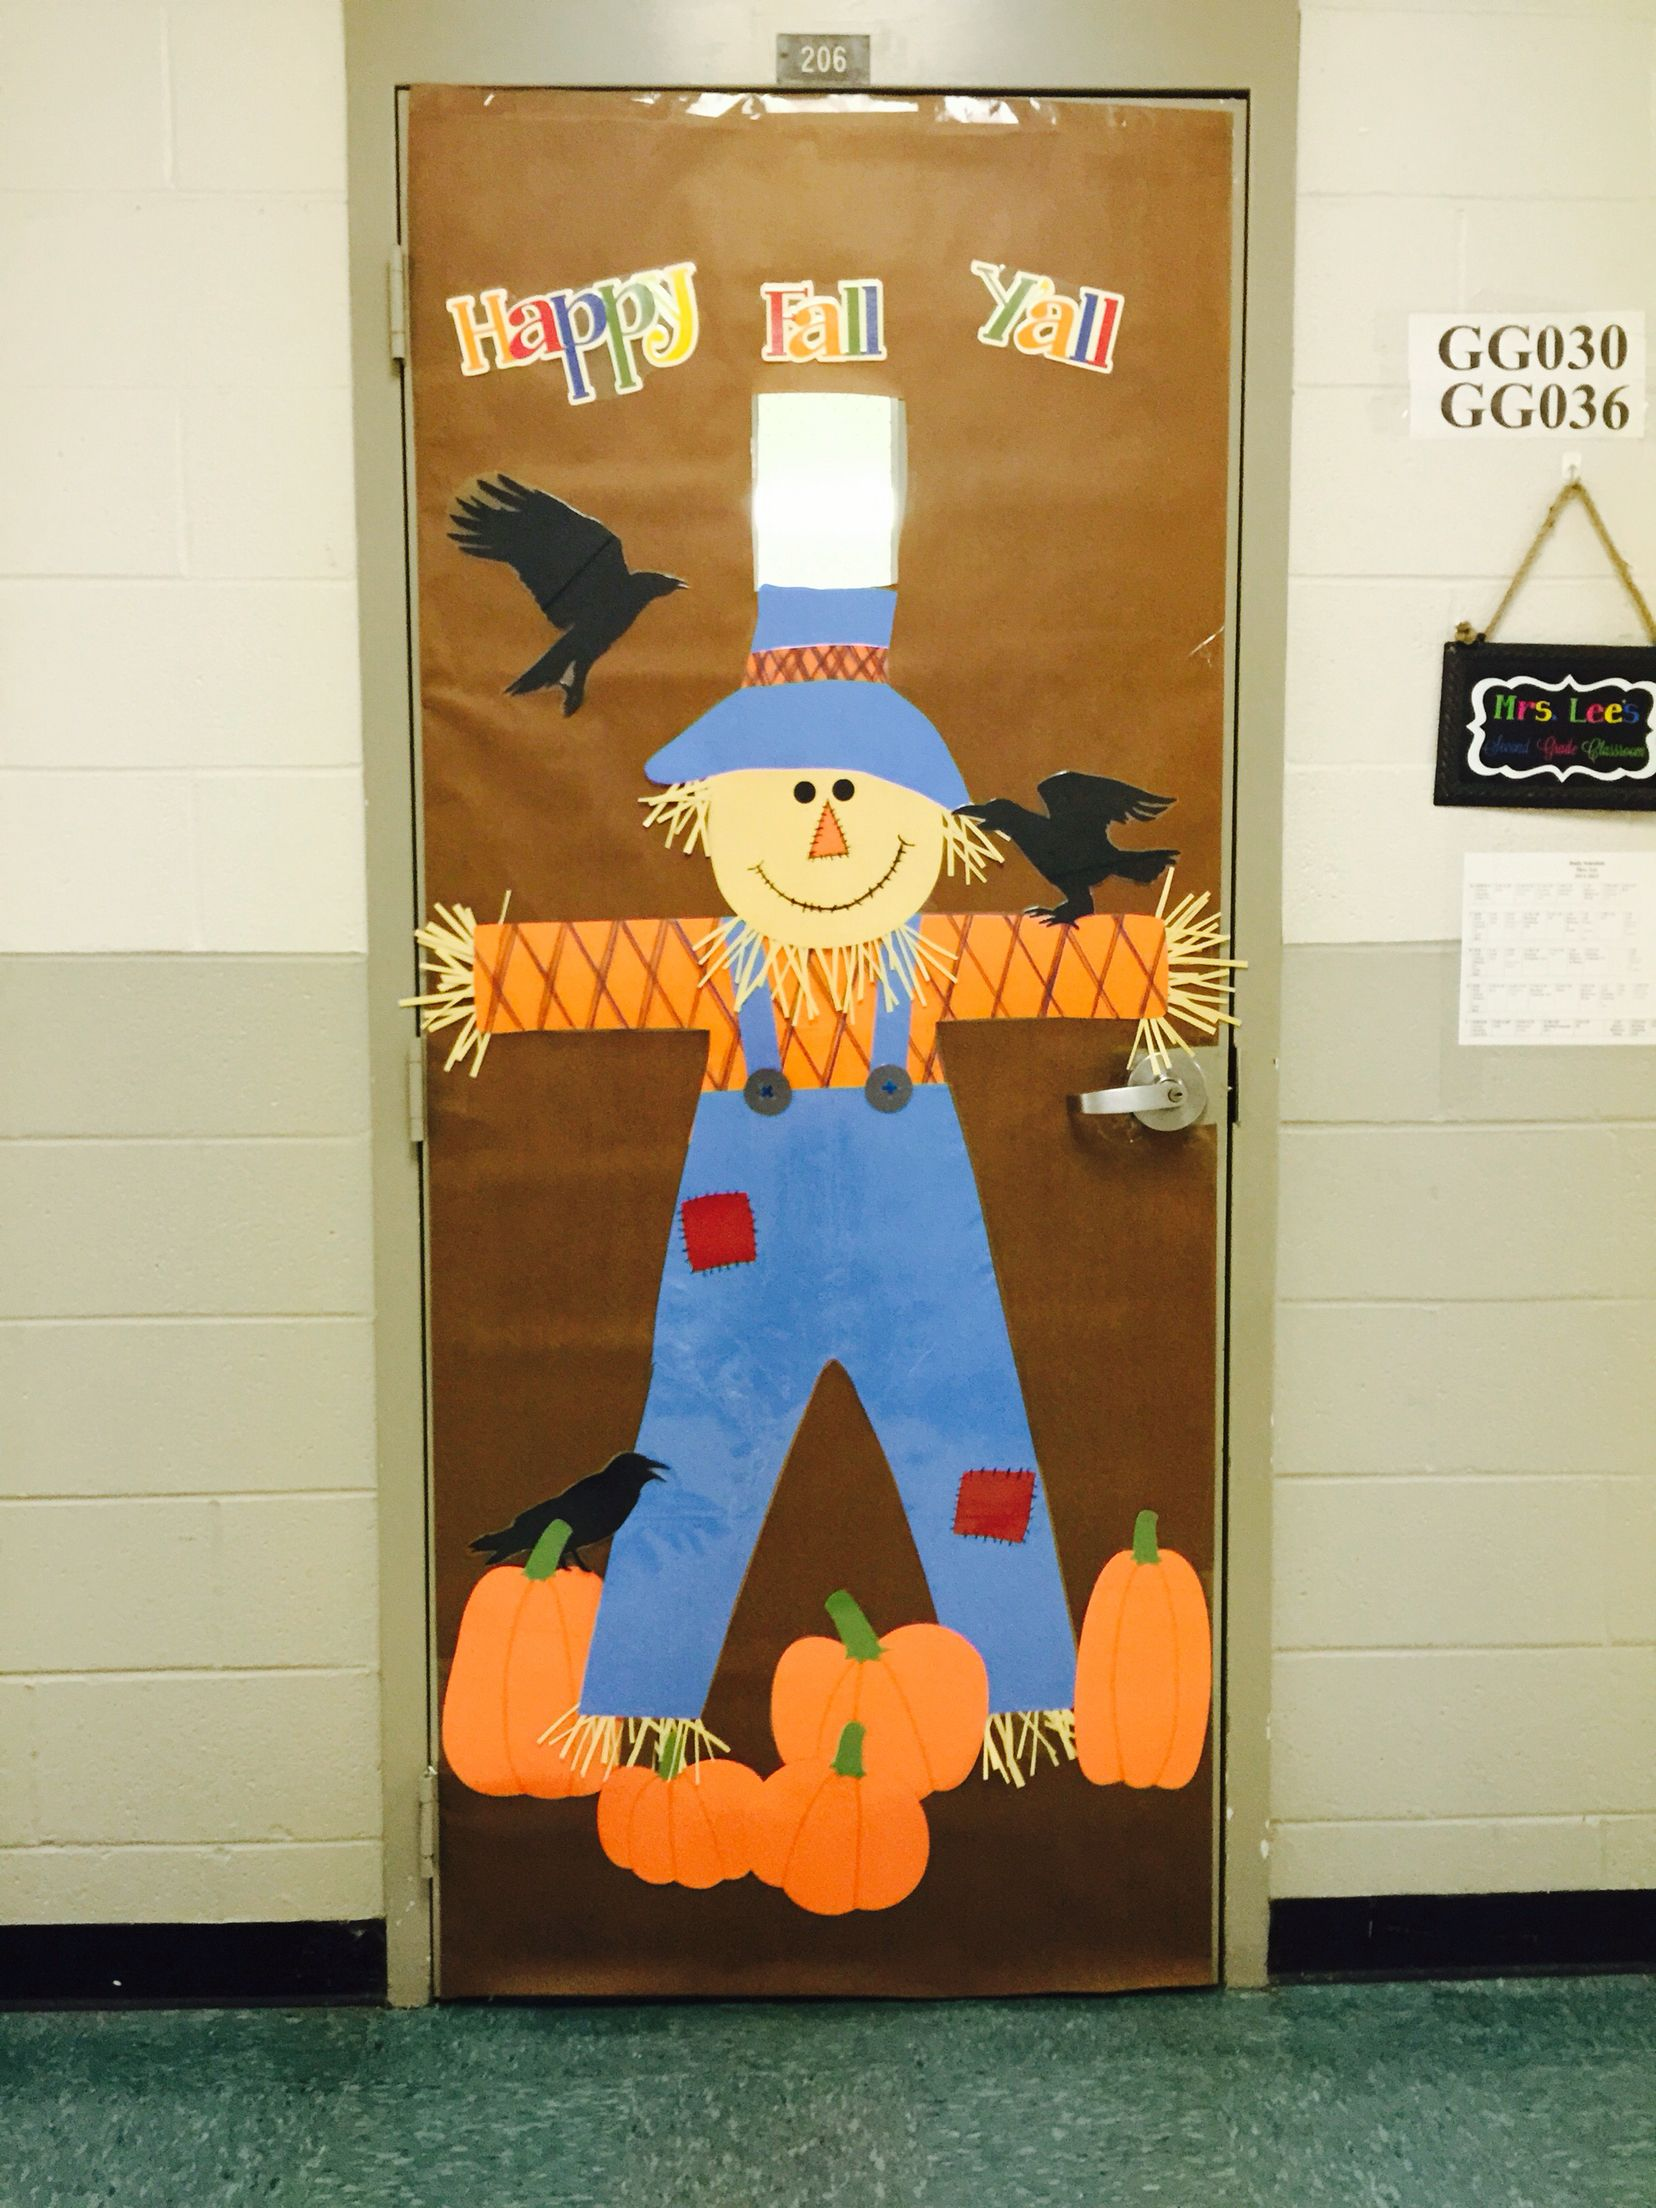 Scarecrow Happy Fall Y all classroom door cover